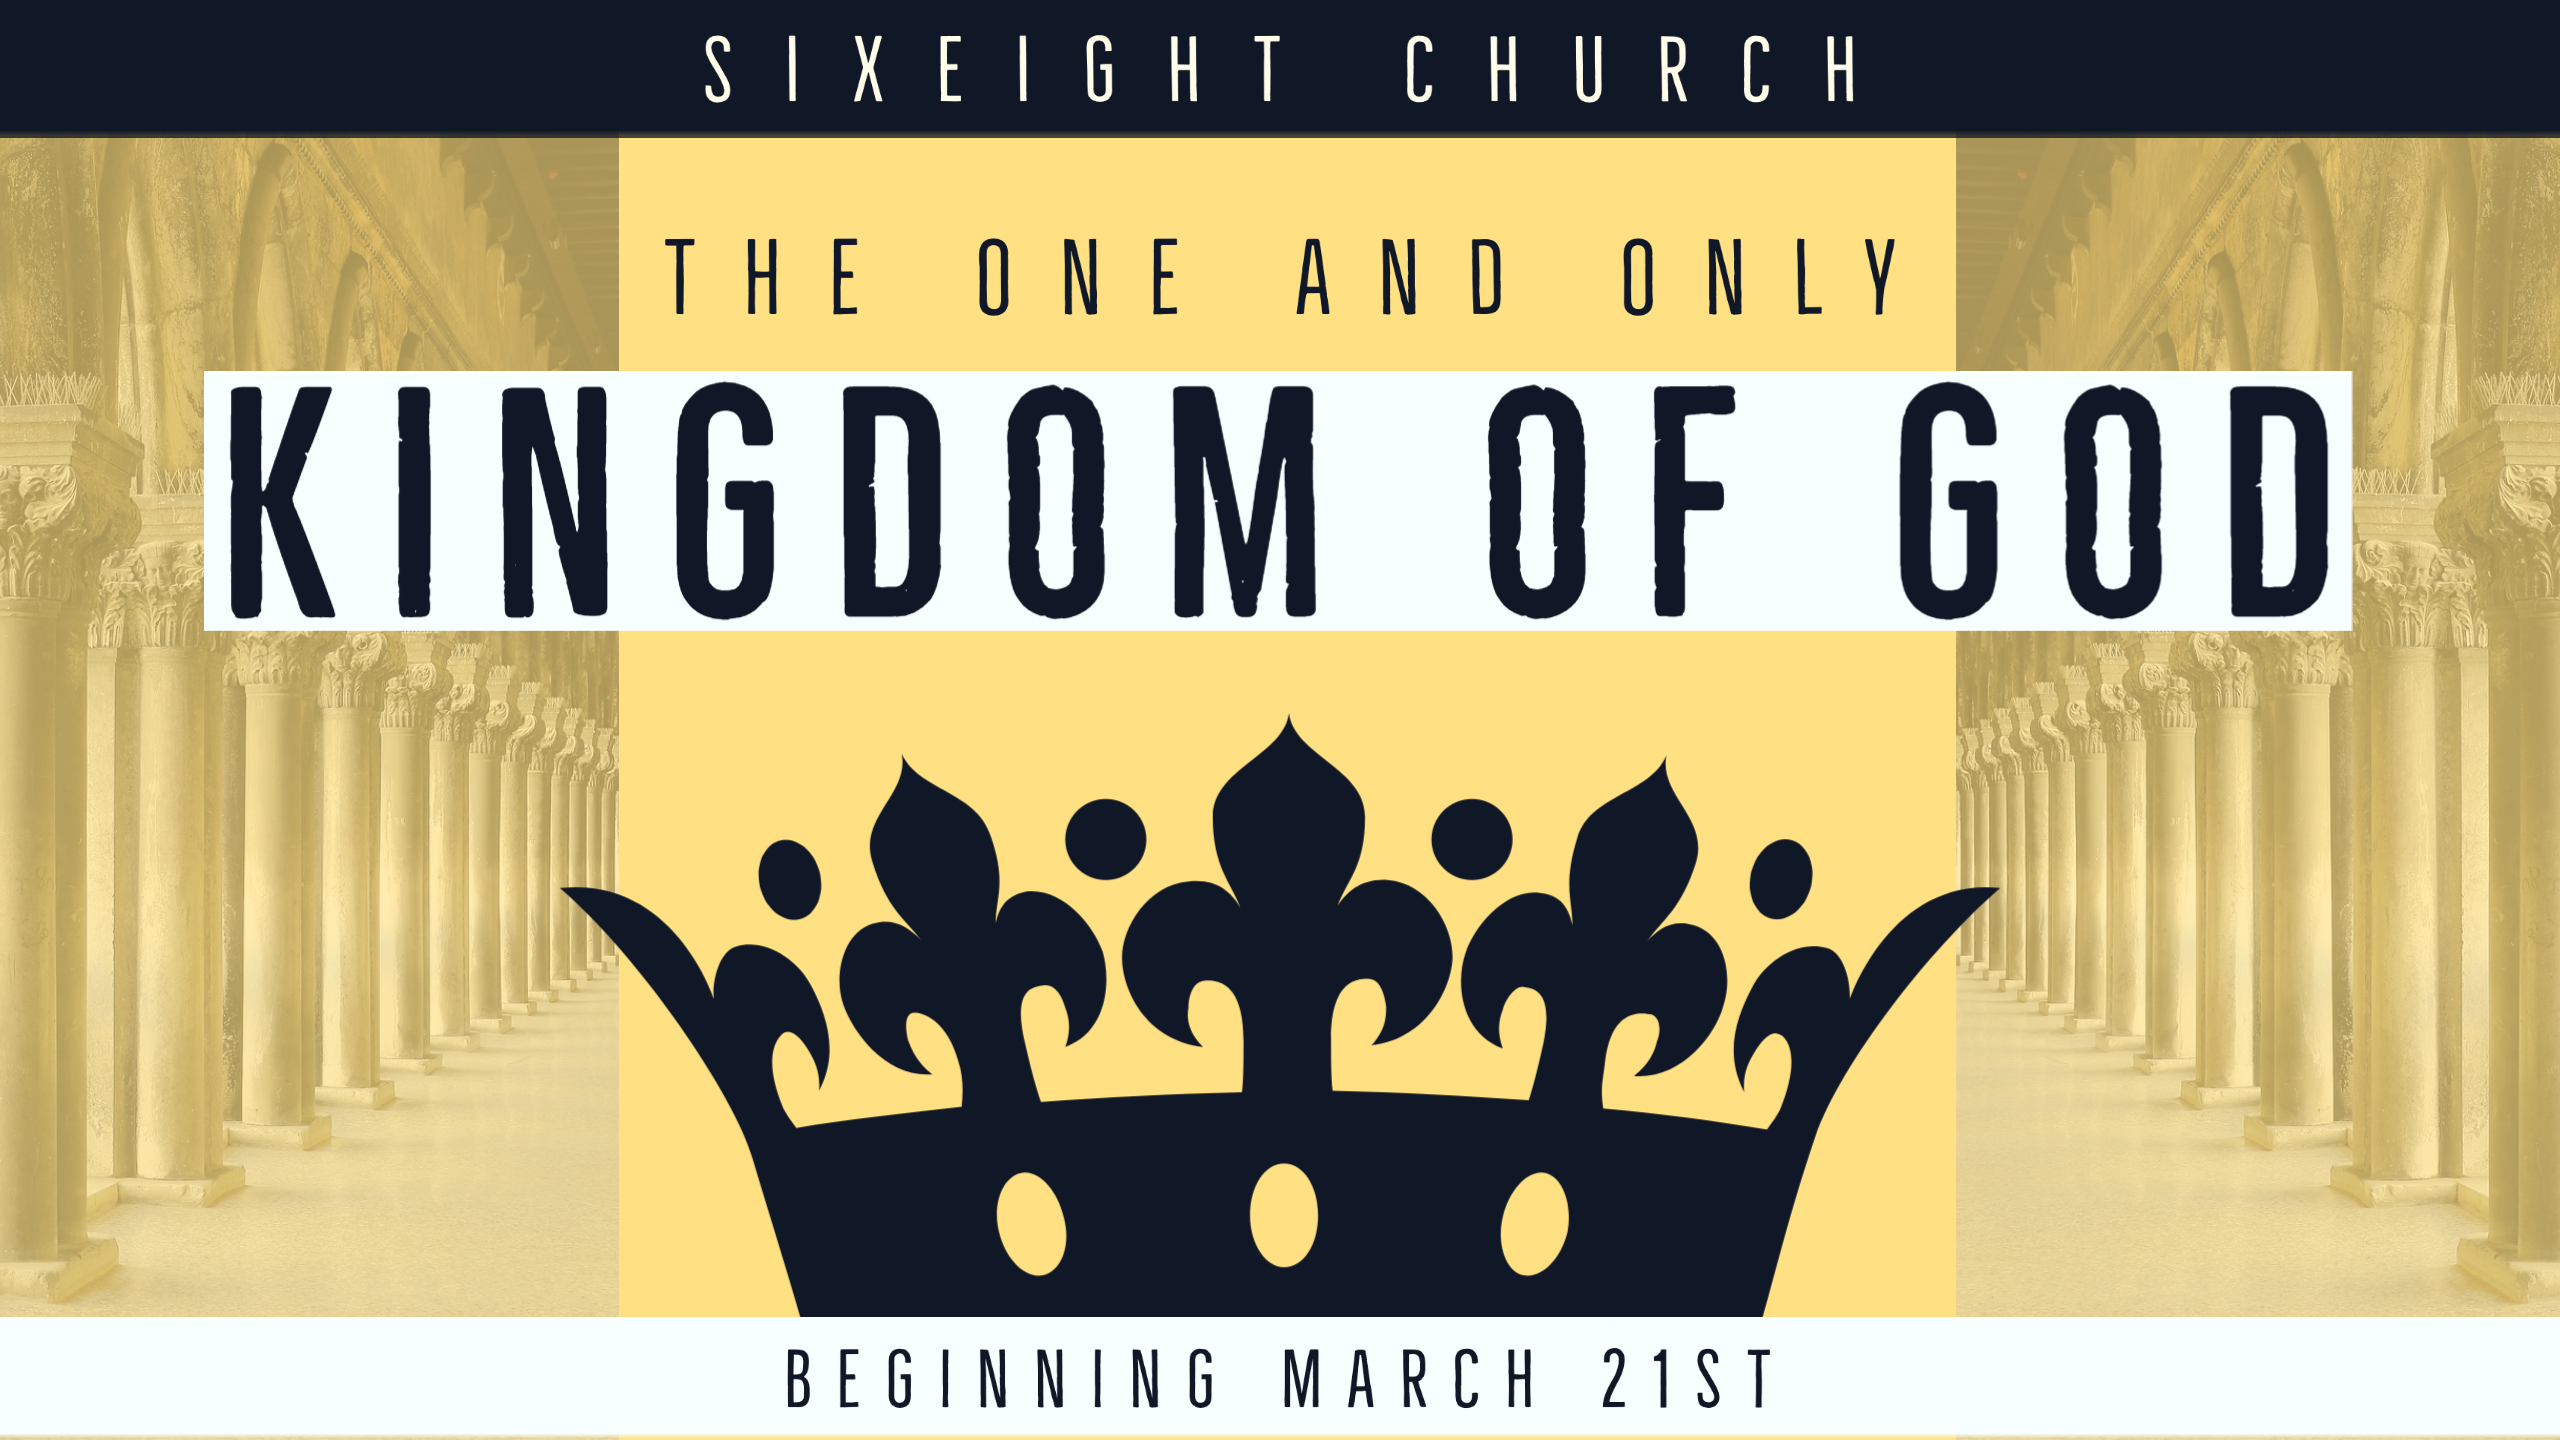 The One And Only Kingdom of God